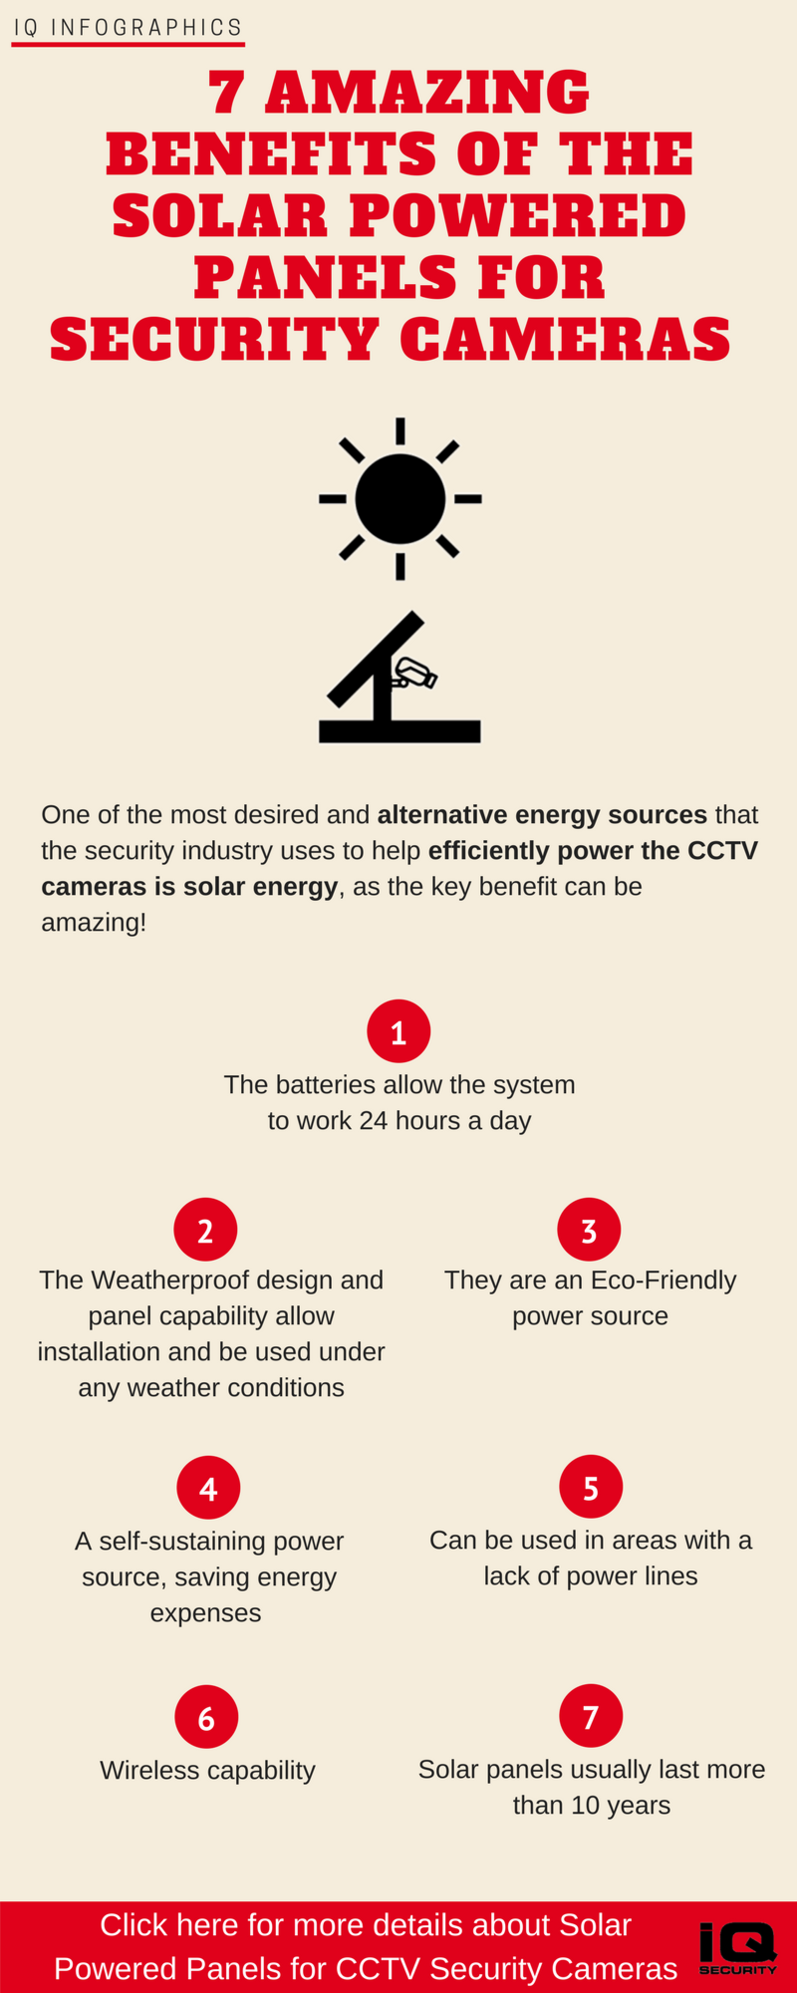 IQ Infographics Solar Power Panels for CCTV Security Cameras